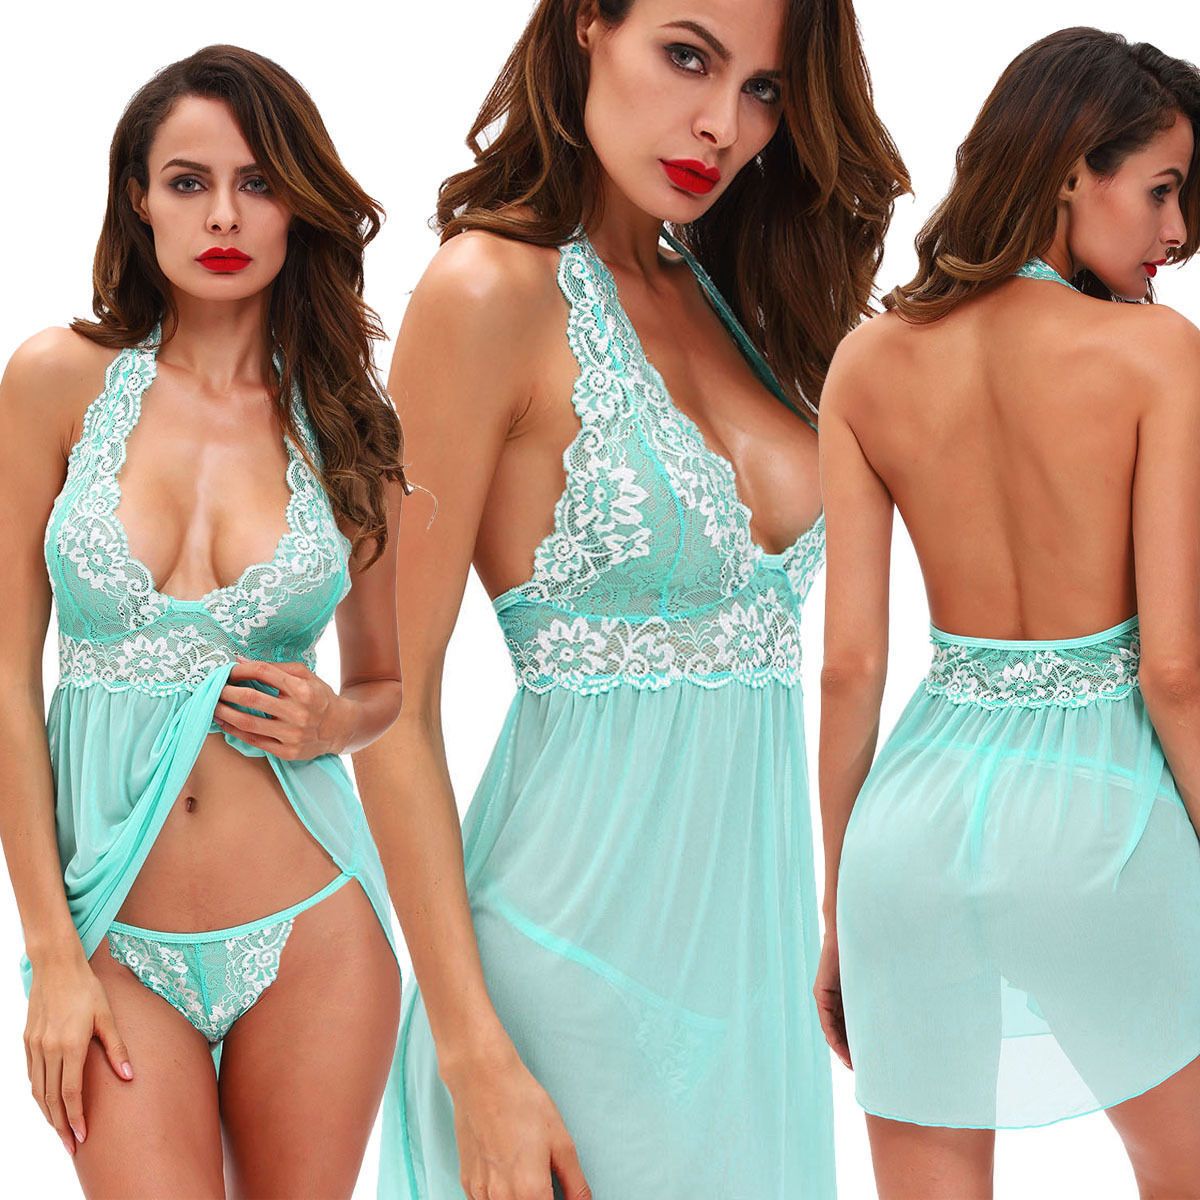 Sexy Women Lingerie Lace Chemise Halter V Neck Babydoll Sleepwear Nightgown US Clothing, Shoes & Accessories